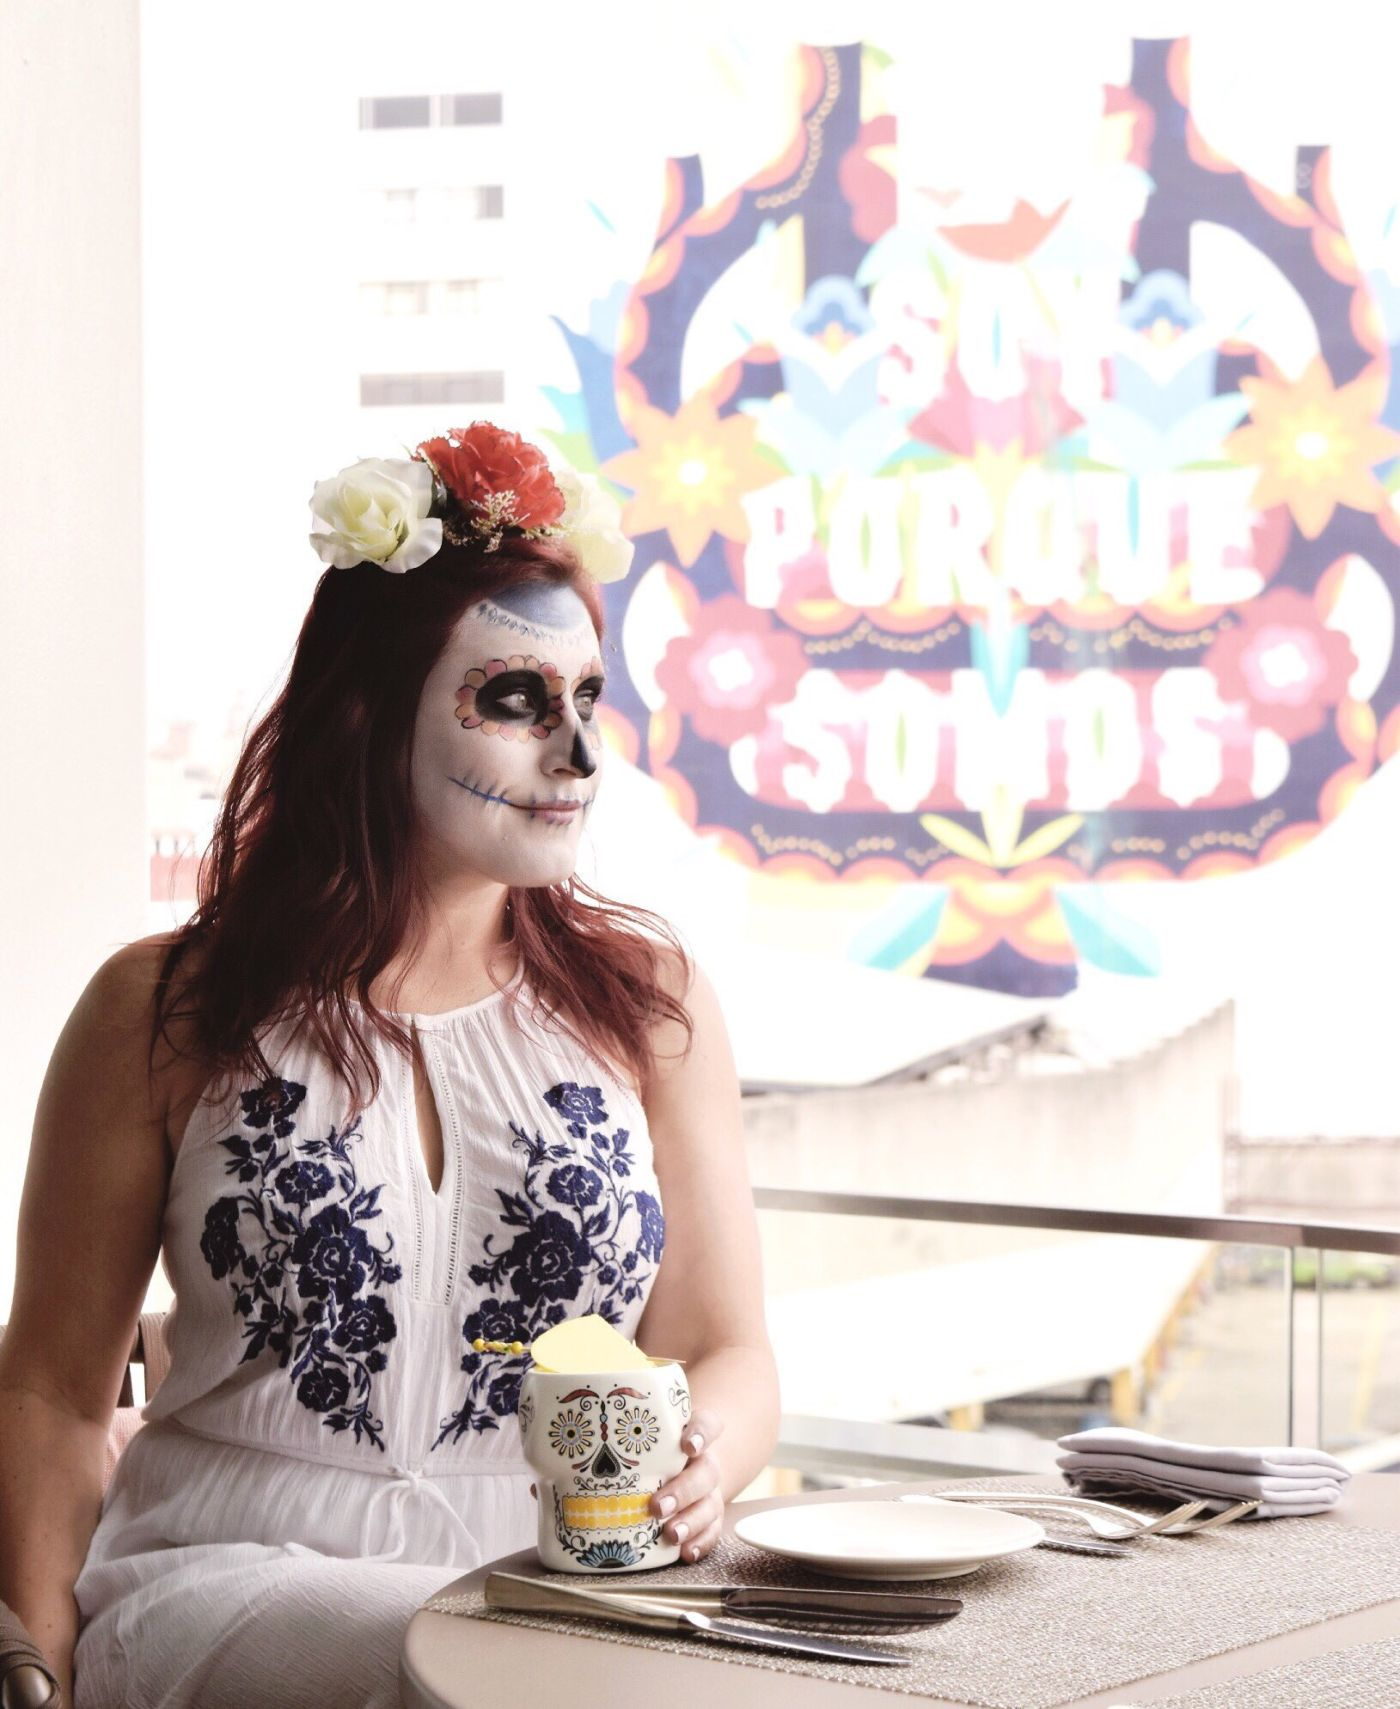 day of the dead in mexico city, day of the dead vlog, day of the dead makeup, sugar skull makeup, mexico city tourist tips, where to go in mexico city, day of the dead parade